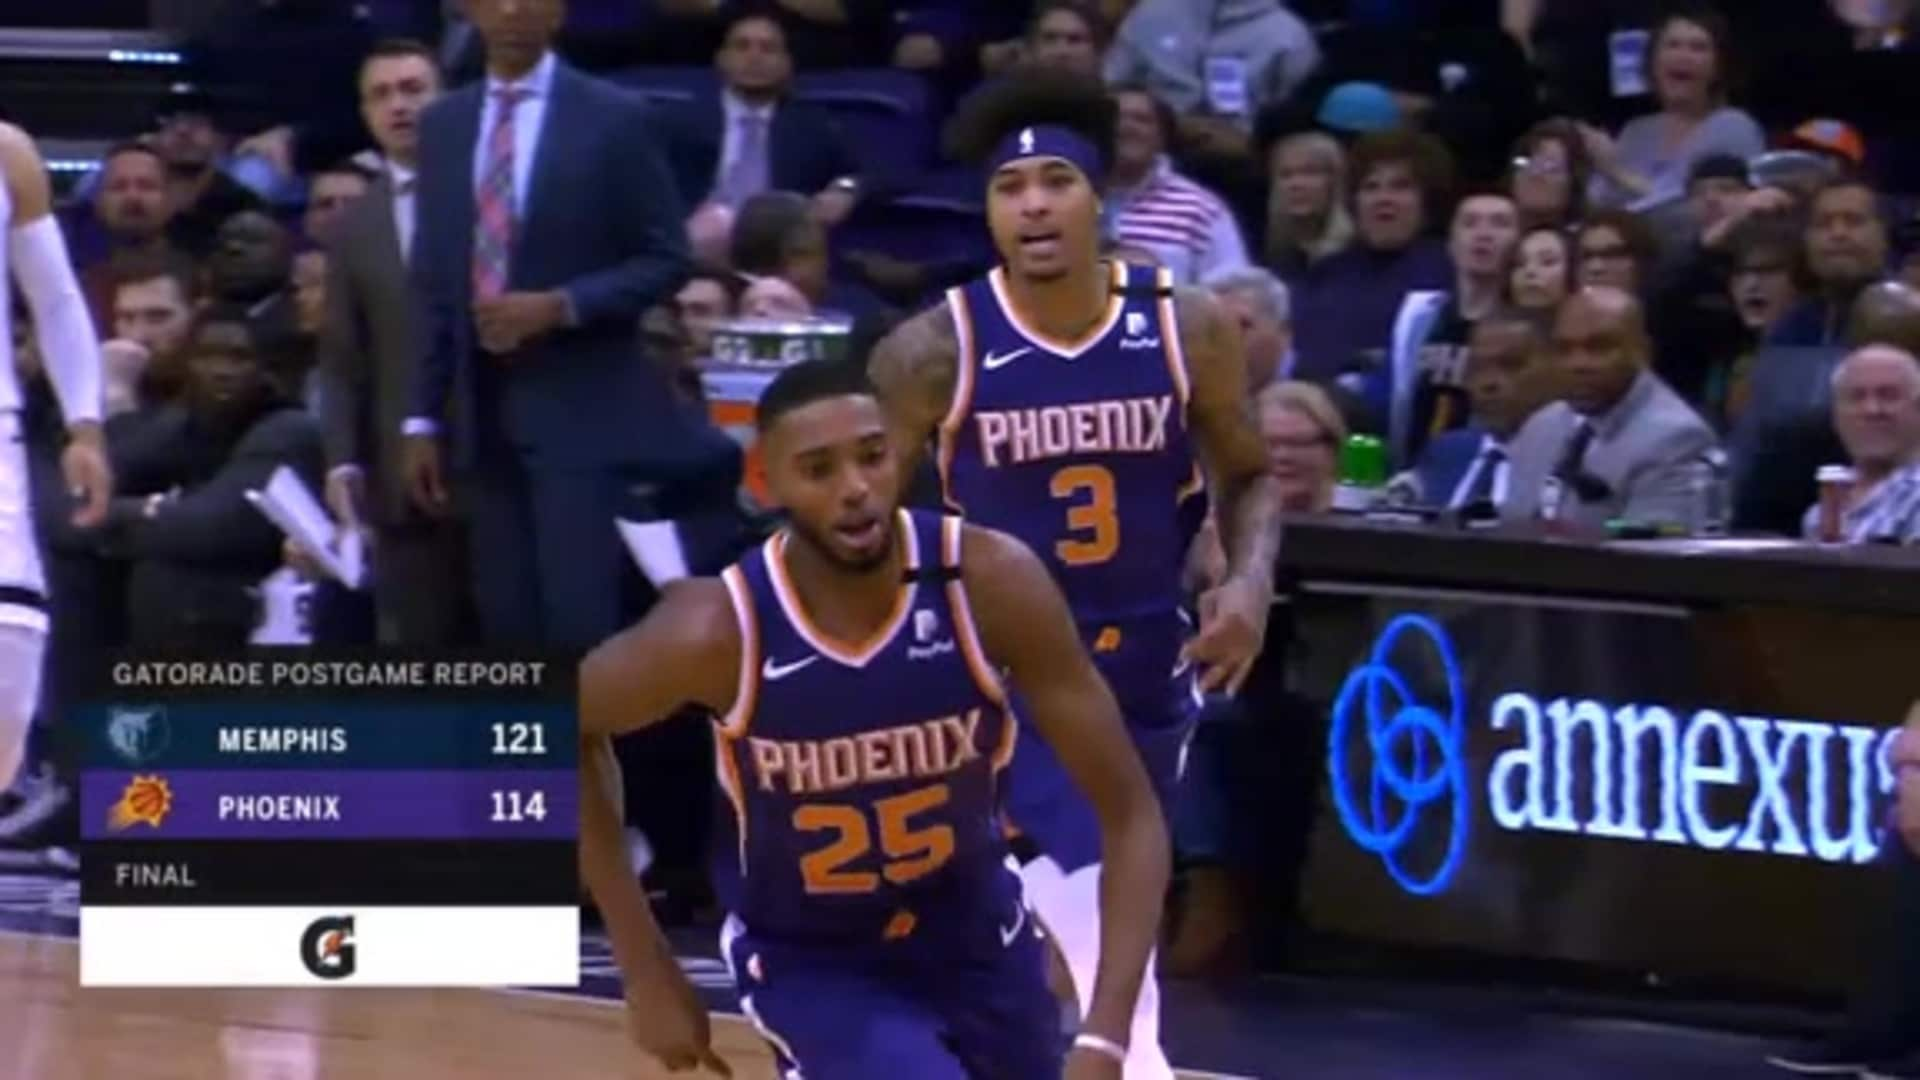 Gatorade Postgame Report: Suns vs. Grizzlies 2019-20